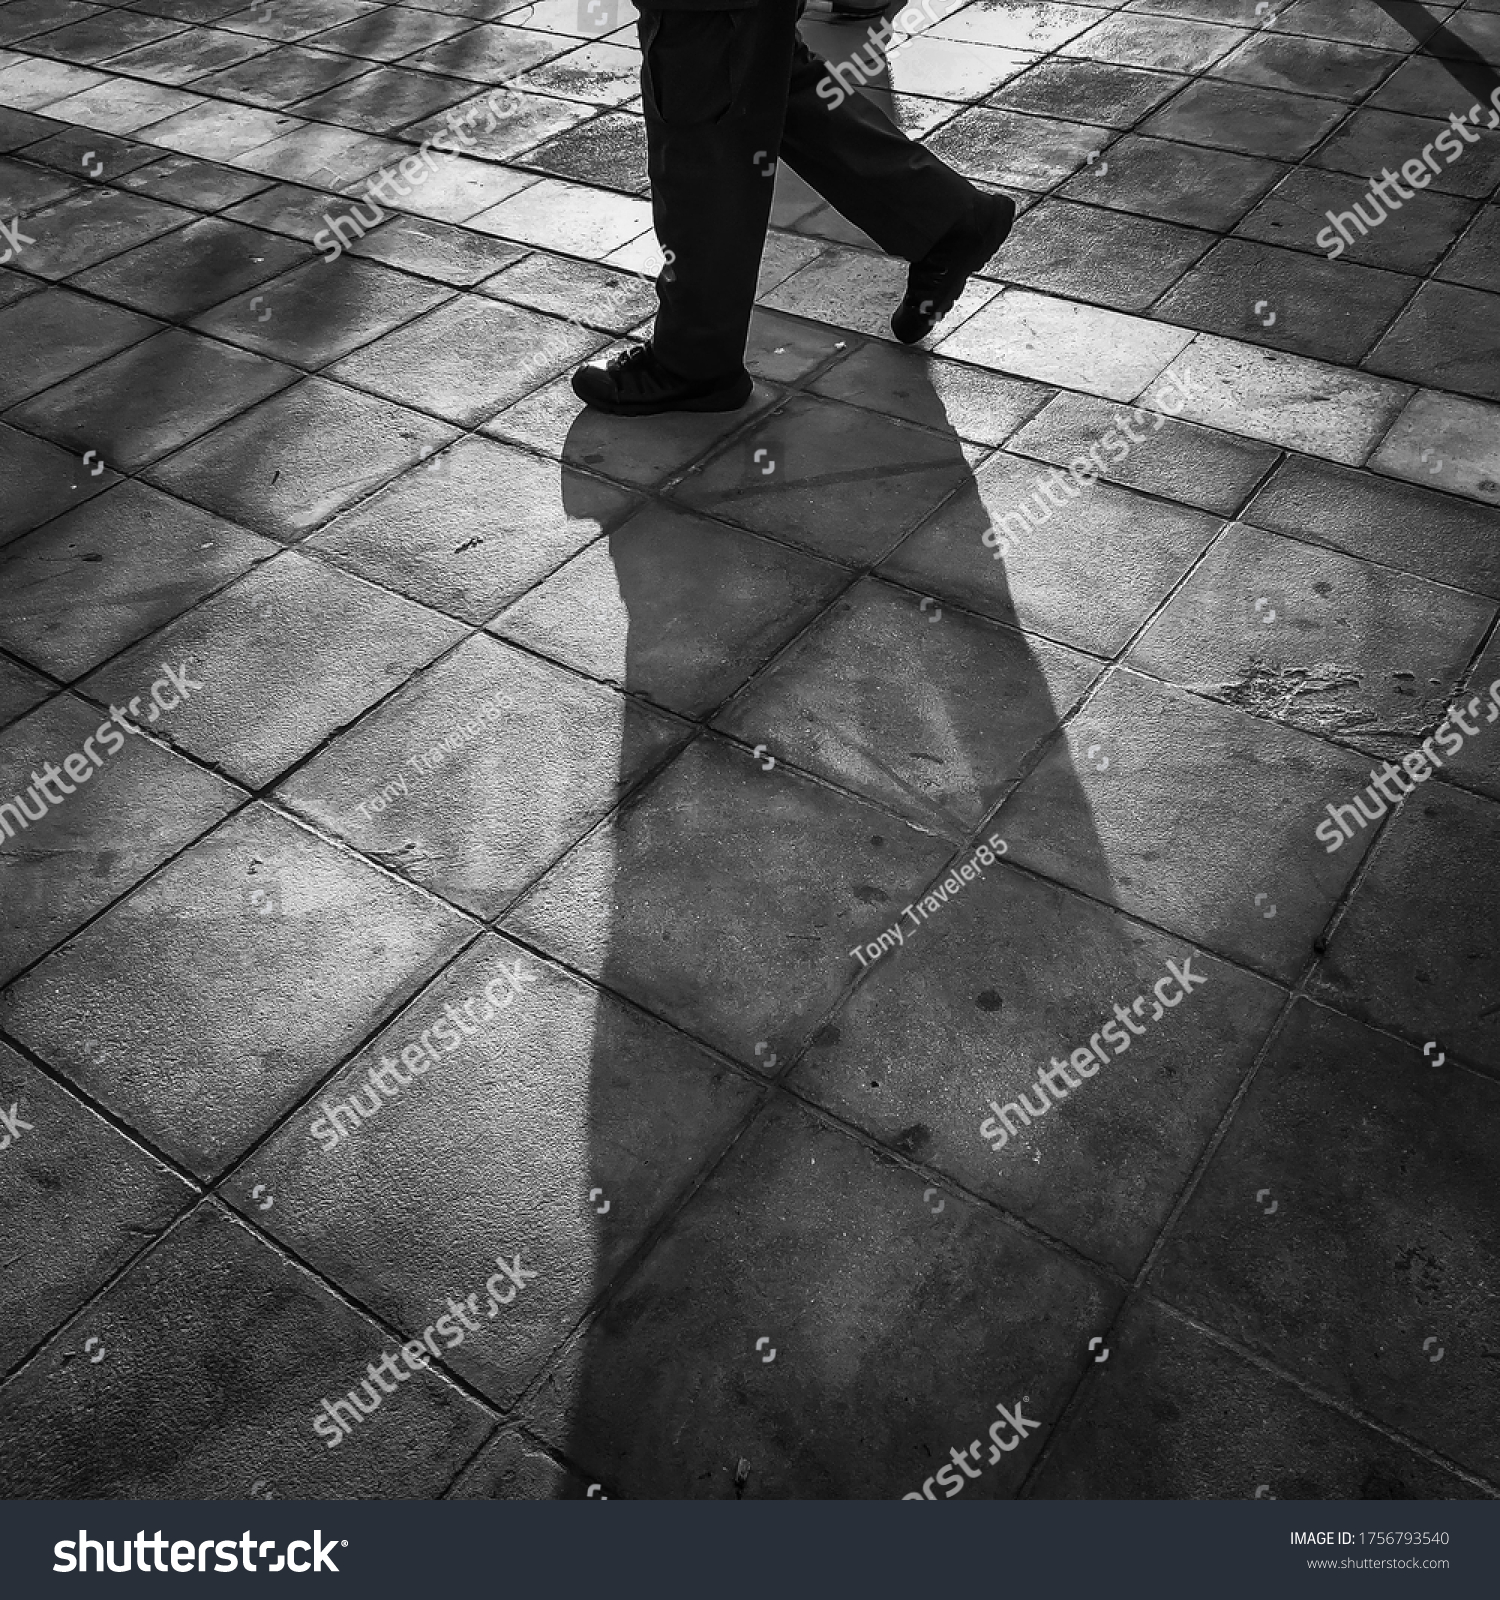 The light and shadow of a person walking.